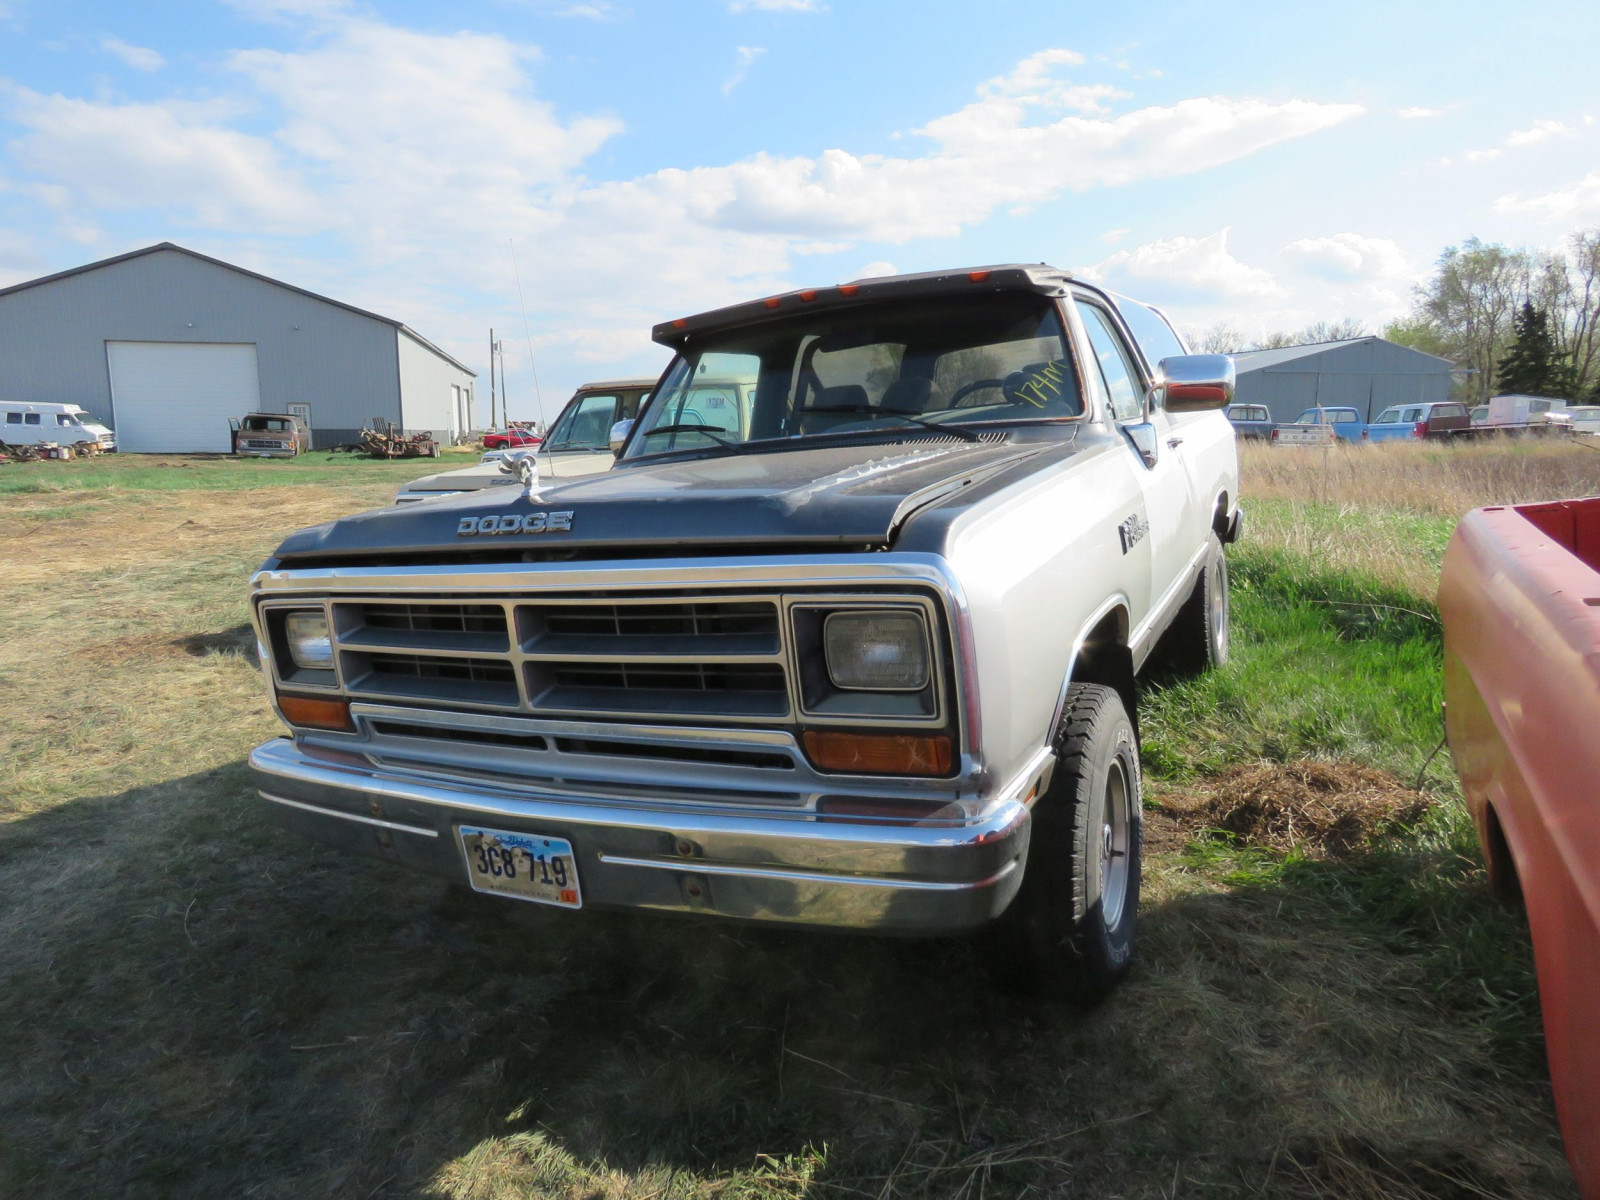 1990 Dodge Ram Charger Pickup - Image 1